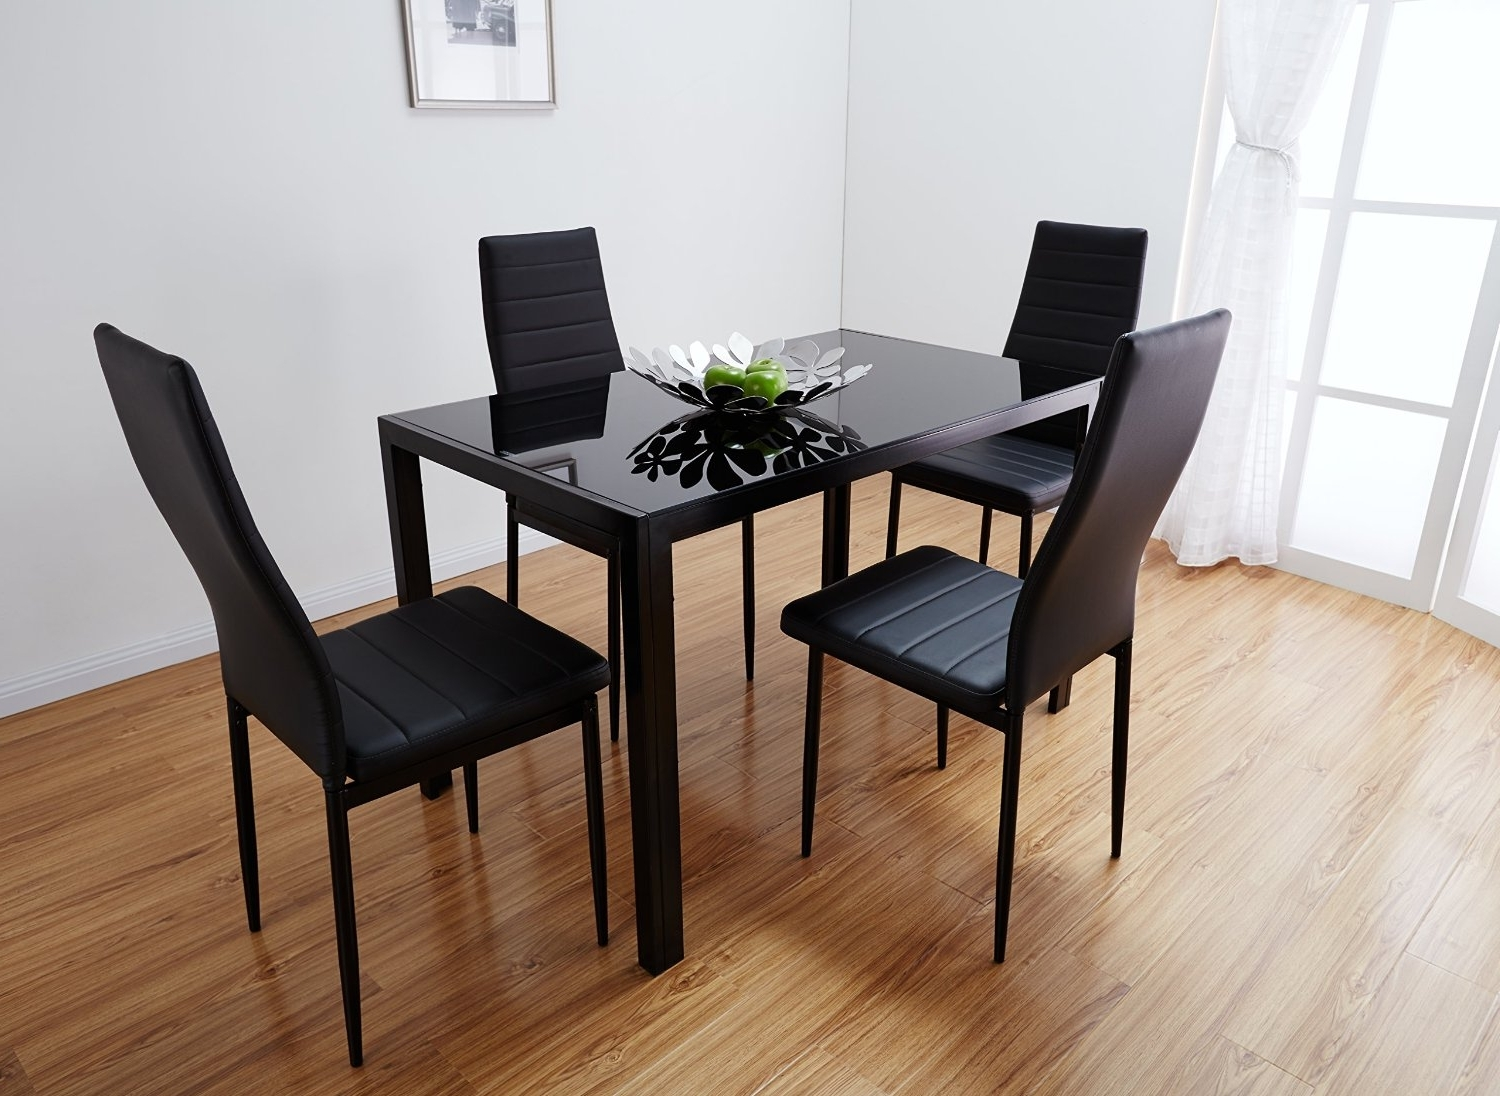 Round Black Glass Dining Tables And 4 Chairs Throughout Popular Glass Top Black Dining Table : Ugarelay – Black Dining Table Furniture (View 21 of 25)